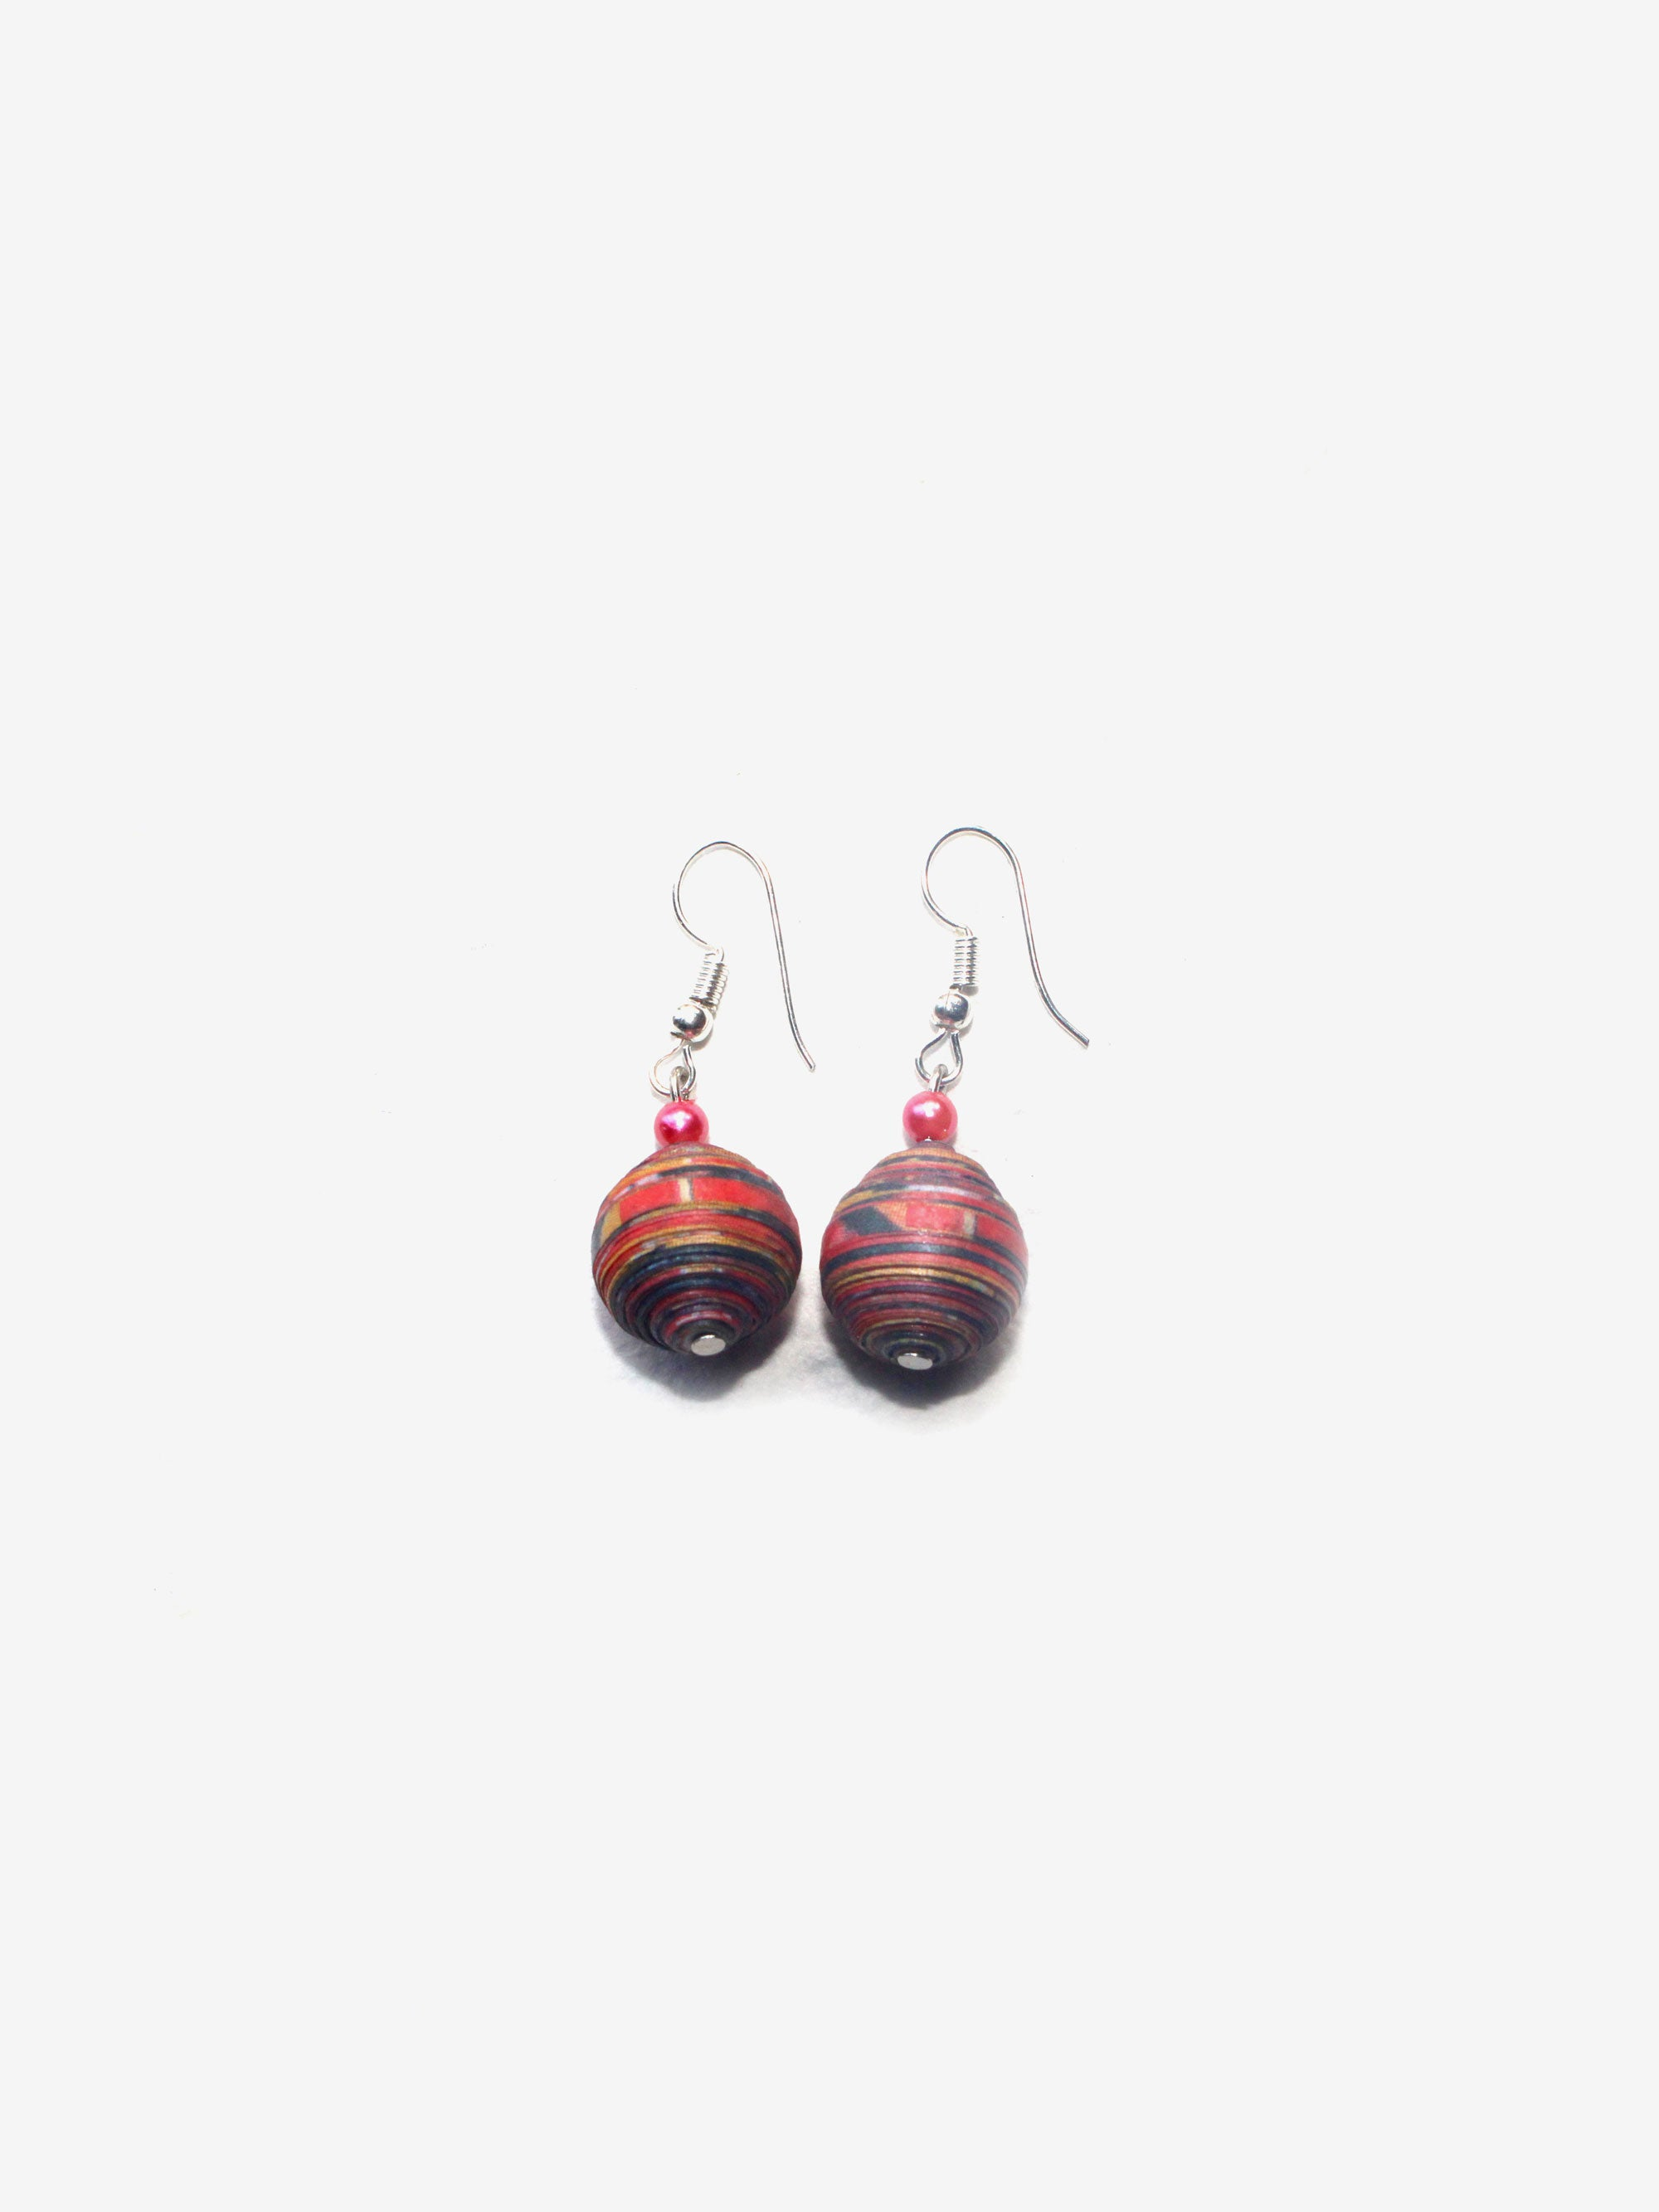 Handcrafted Lao Earrings in Chili Red